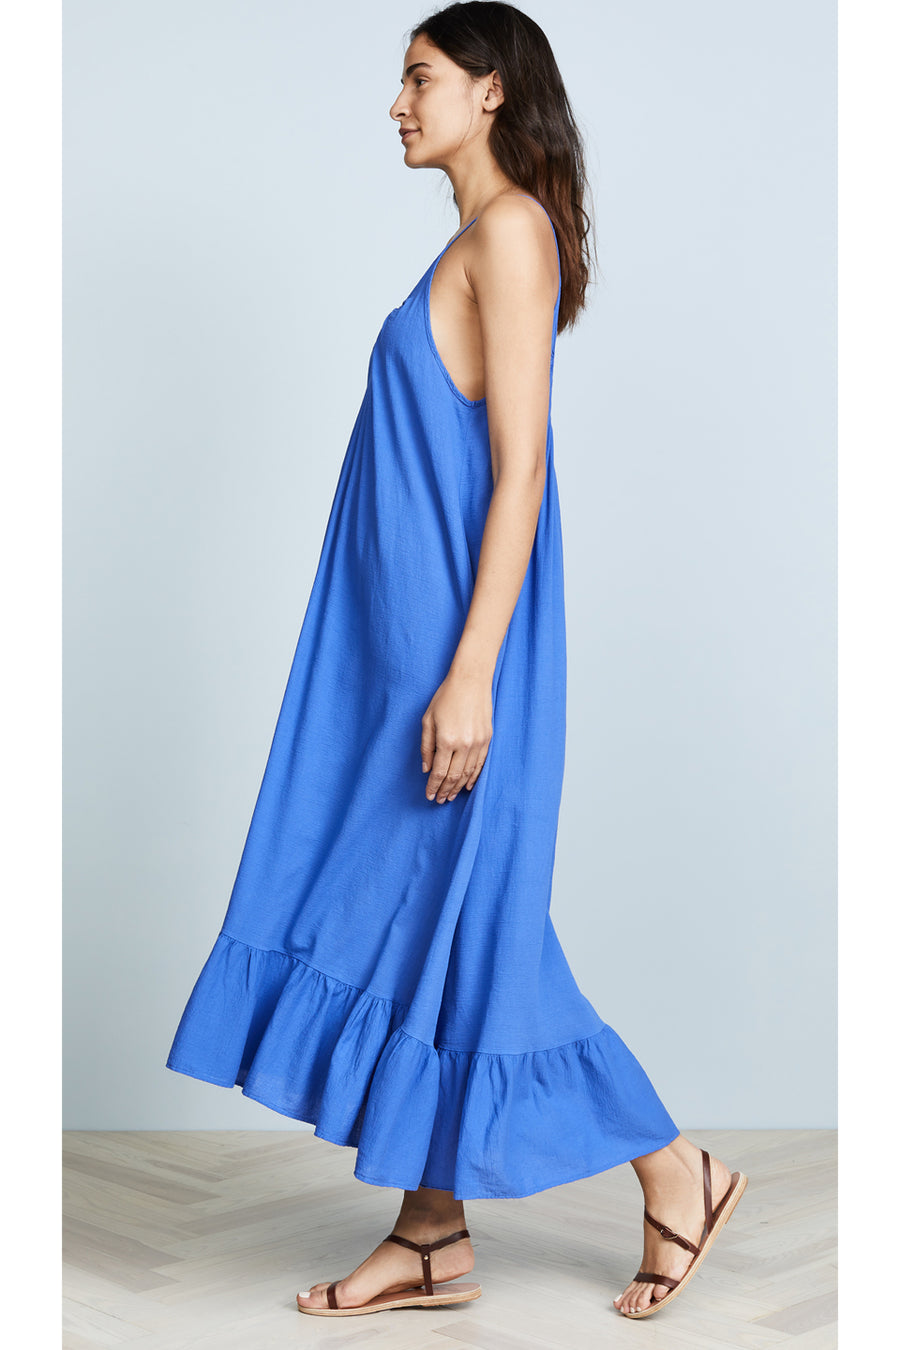 Paloma Dress - Moroccan Blue